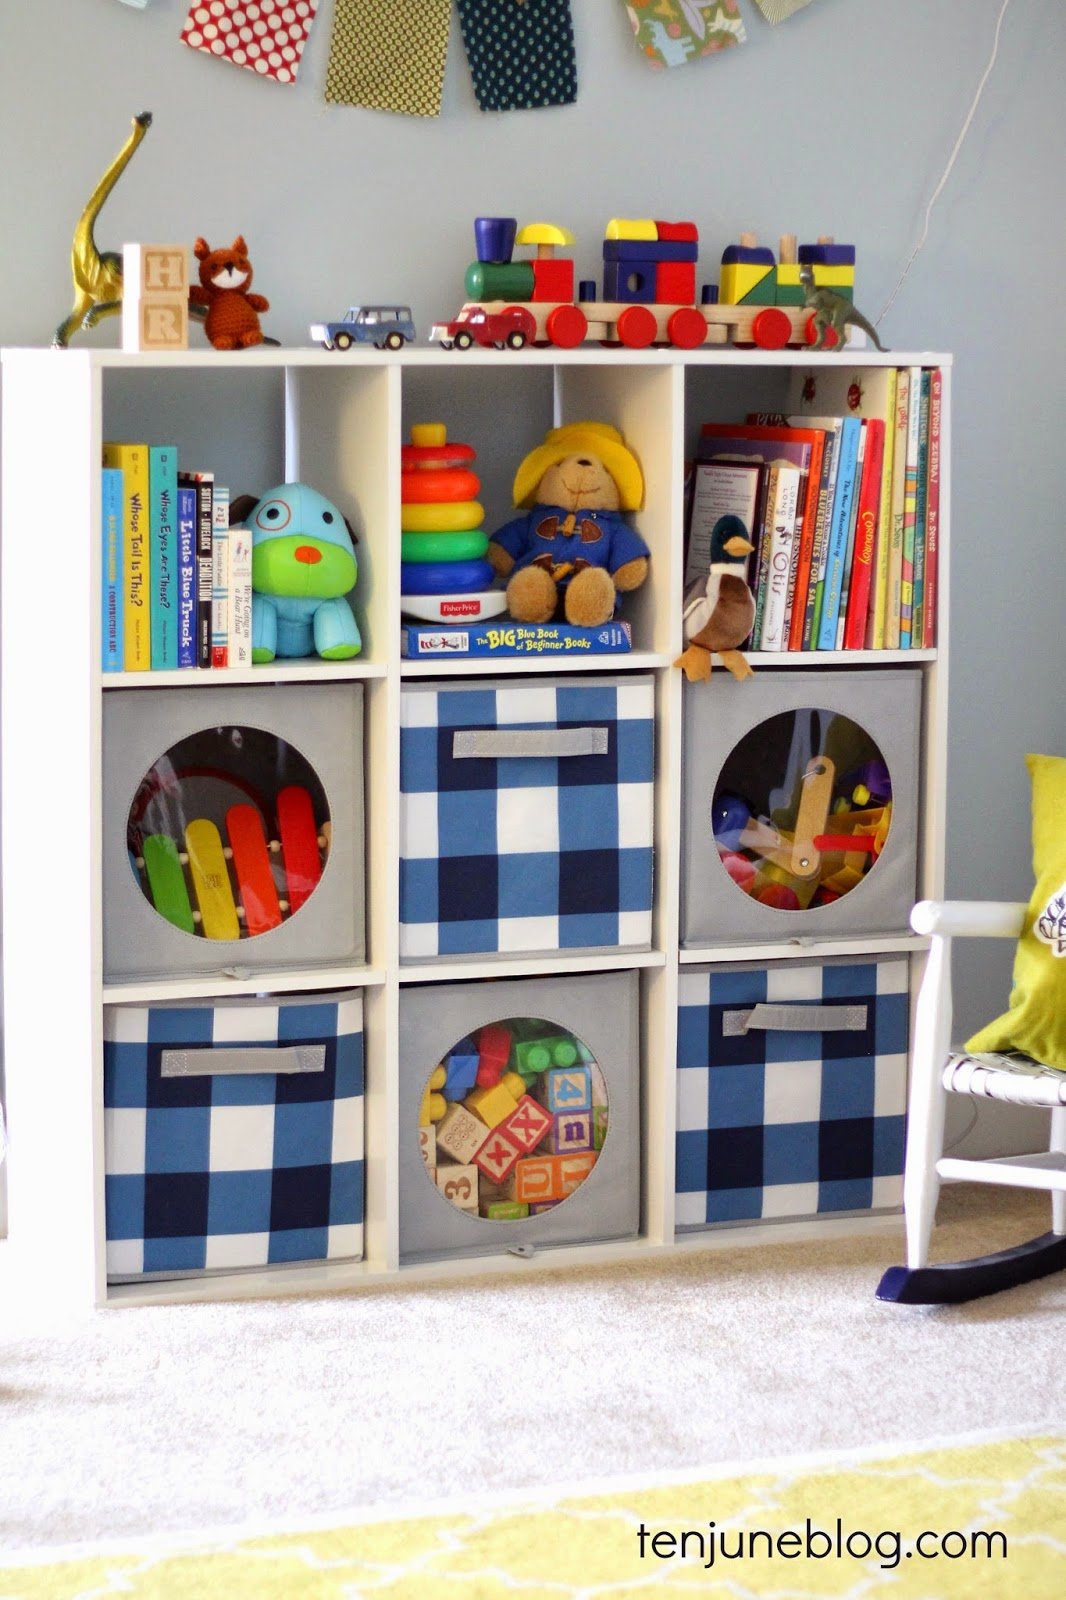 Feb 19, · These kids' toy storage ideas will not only reduce stress, but reduce the clutter in your child's room. Tidy up with these smart playroom storage ideas for kids' clothes, toys, and more. Kids' toys have a habit of turning up all over the allxpreswts.ml: Better Homes & Gardens.